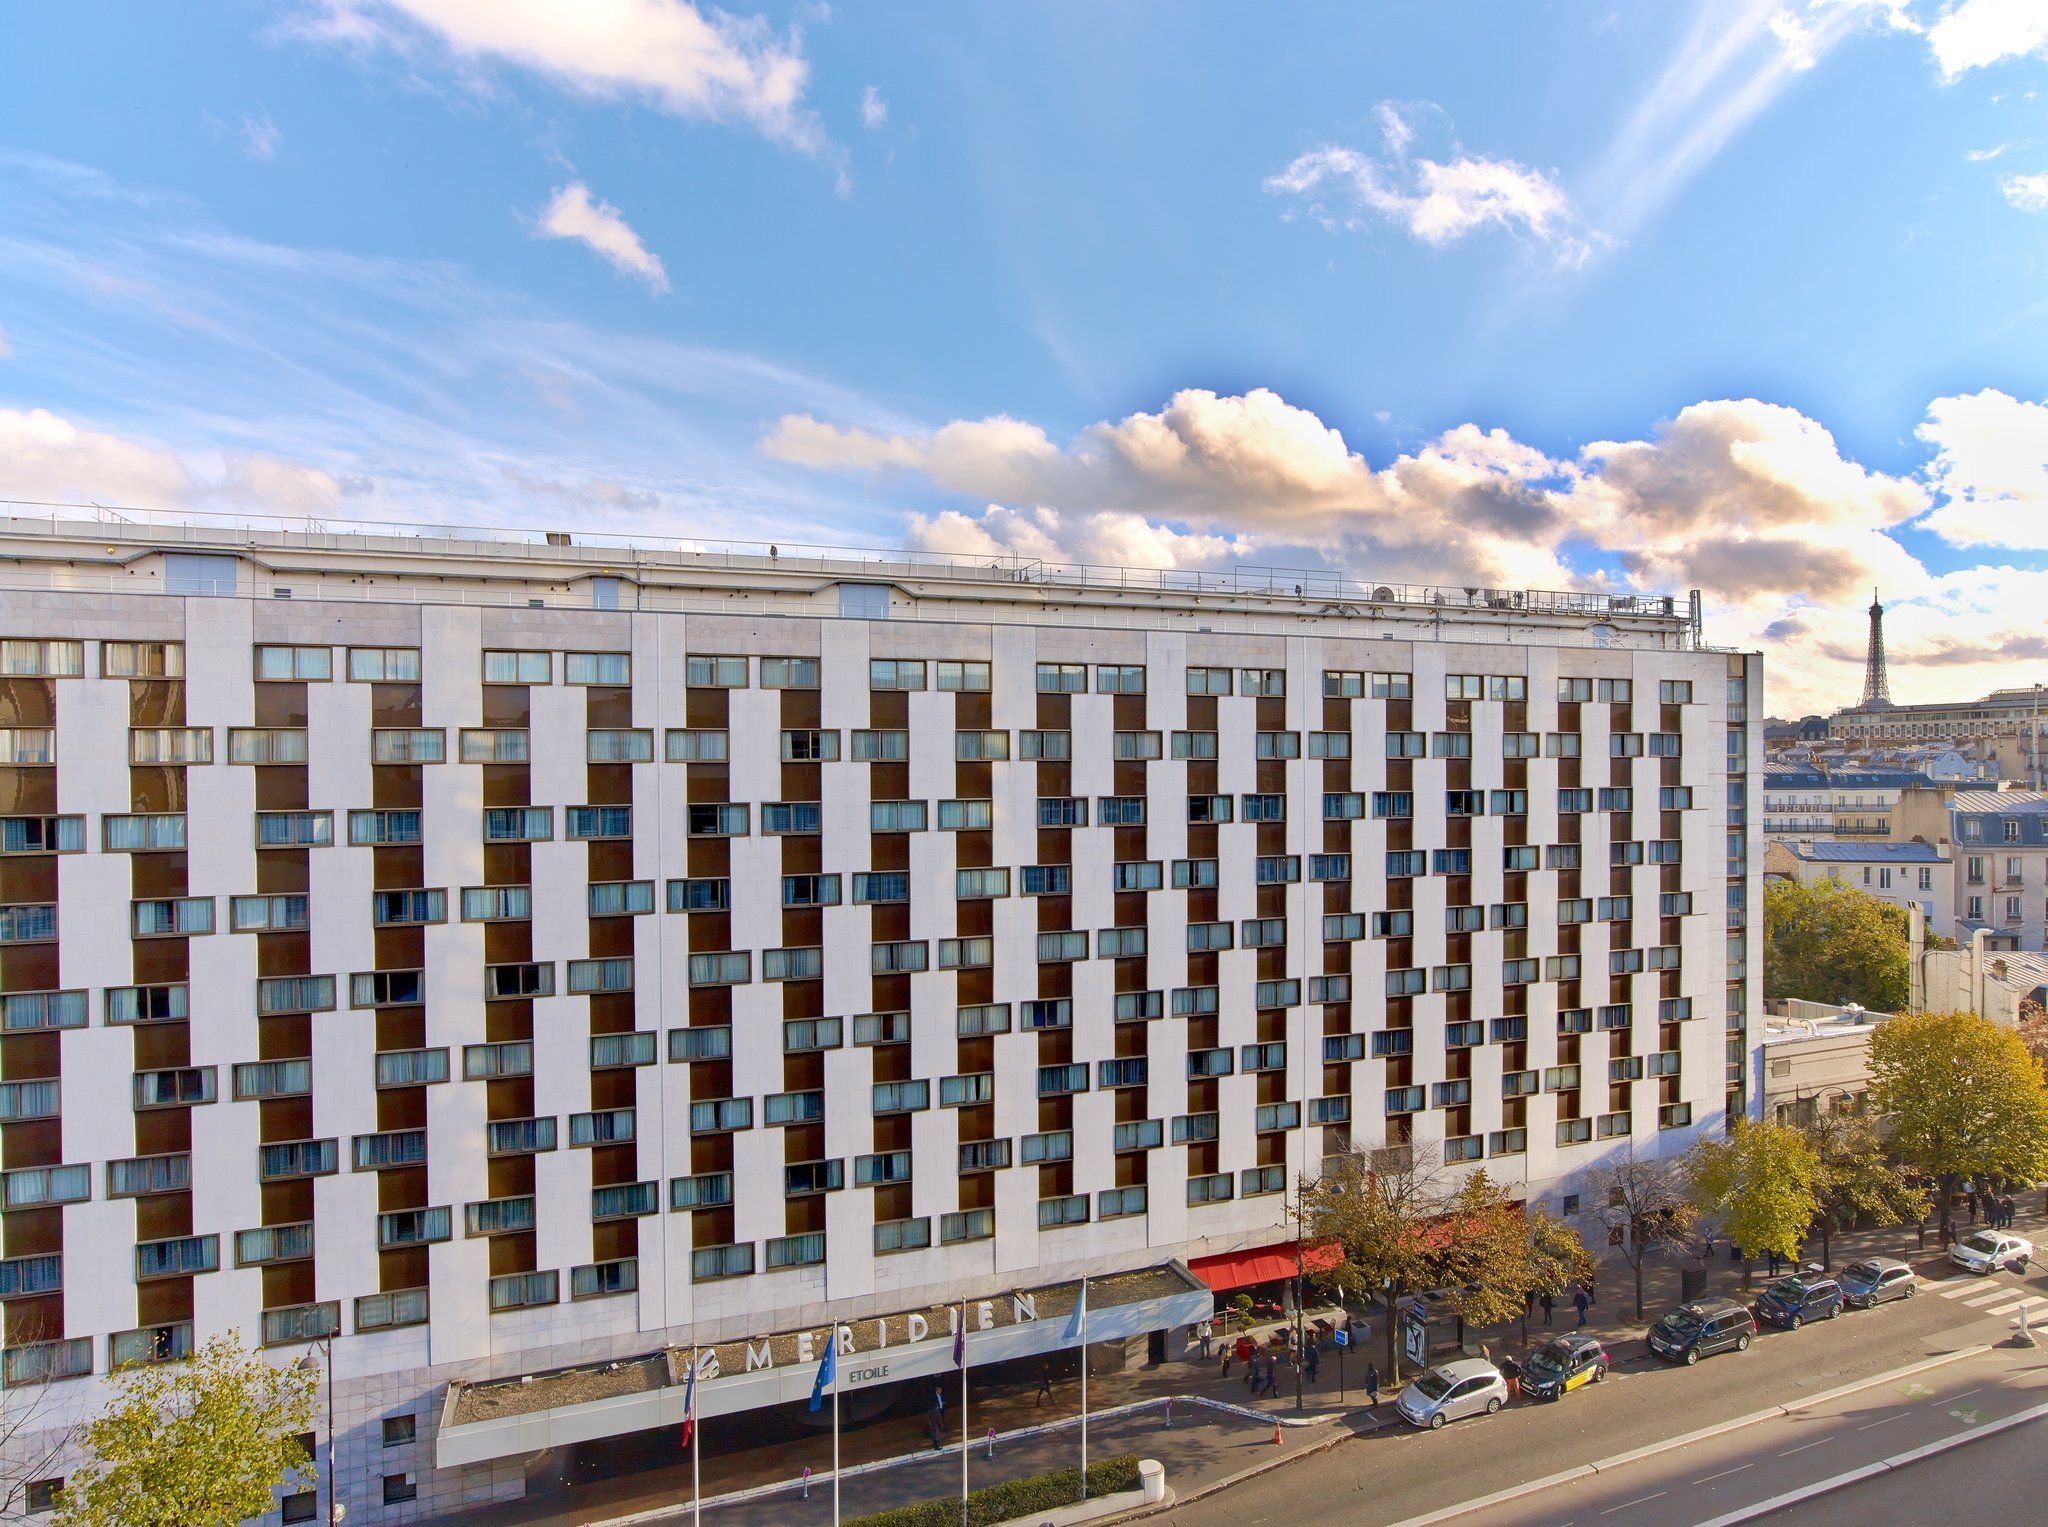 Pin On 2019 Top 50 Meeting Hotels In Europe